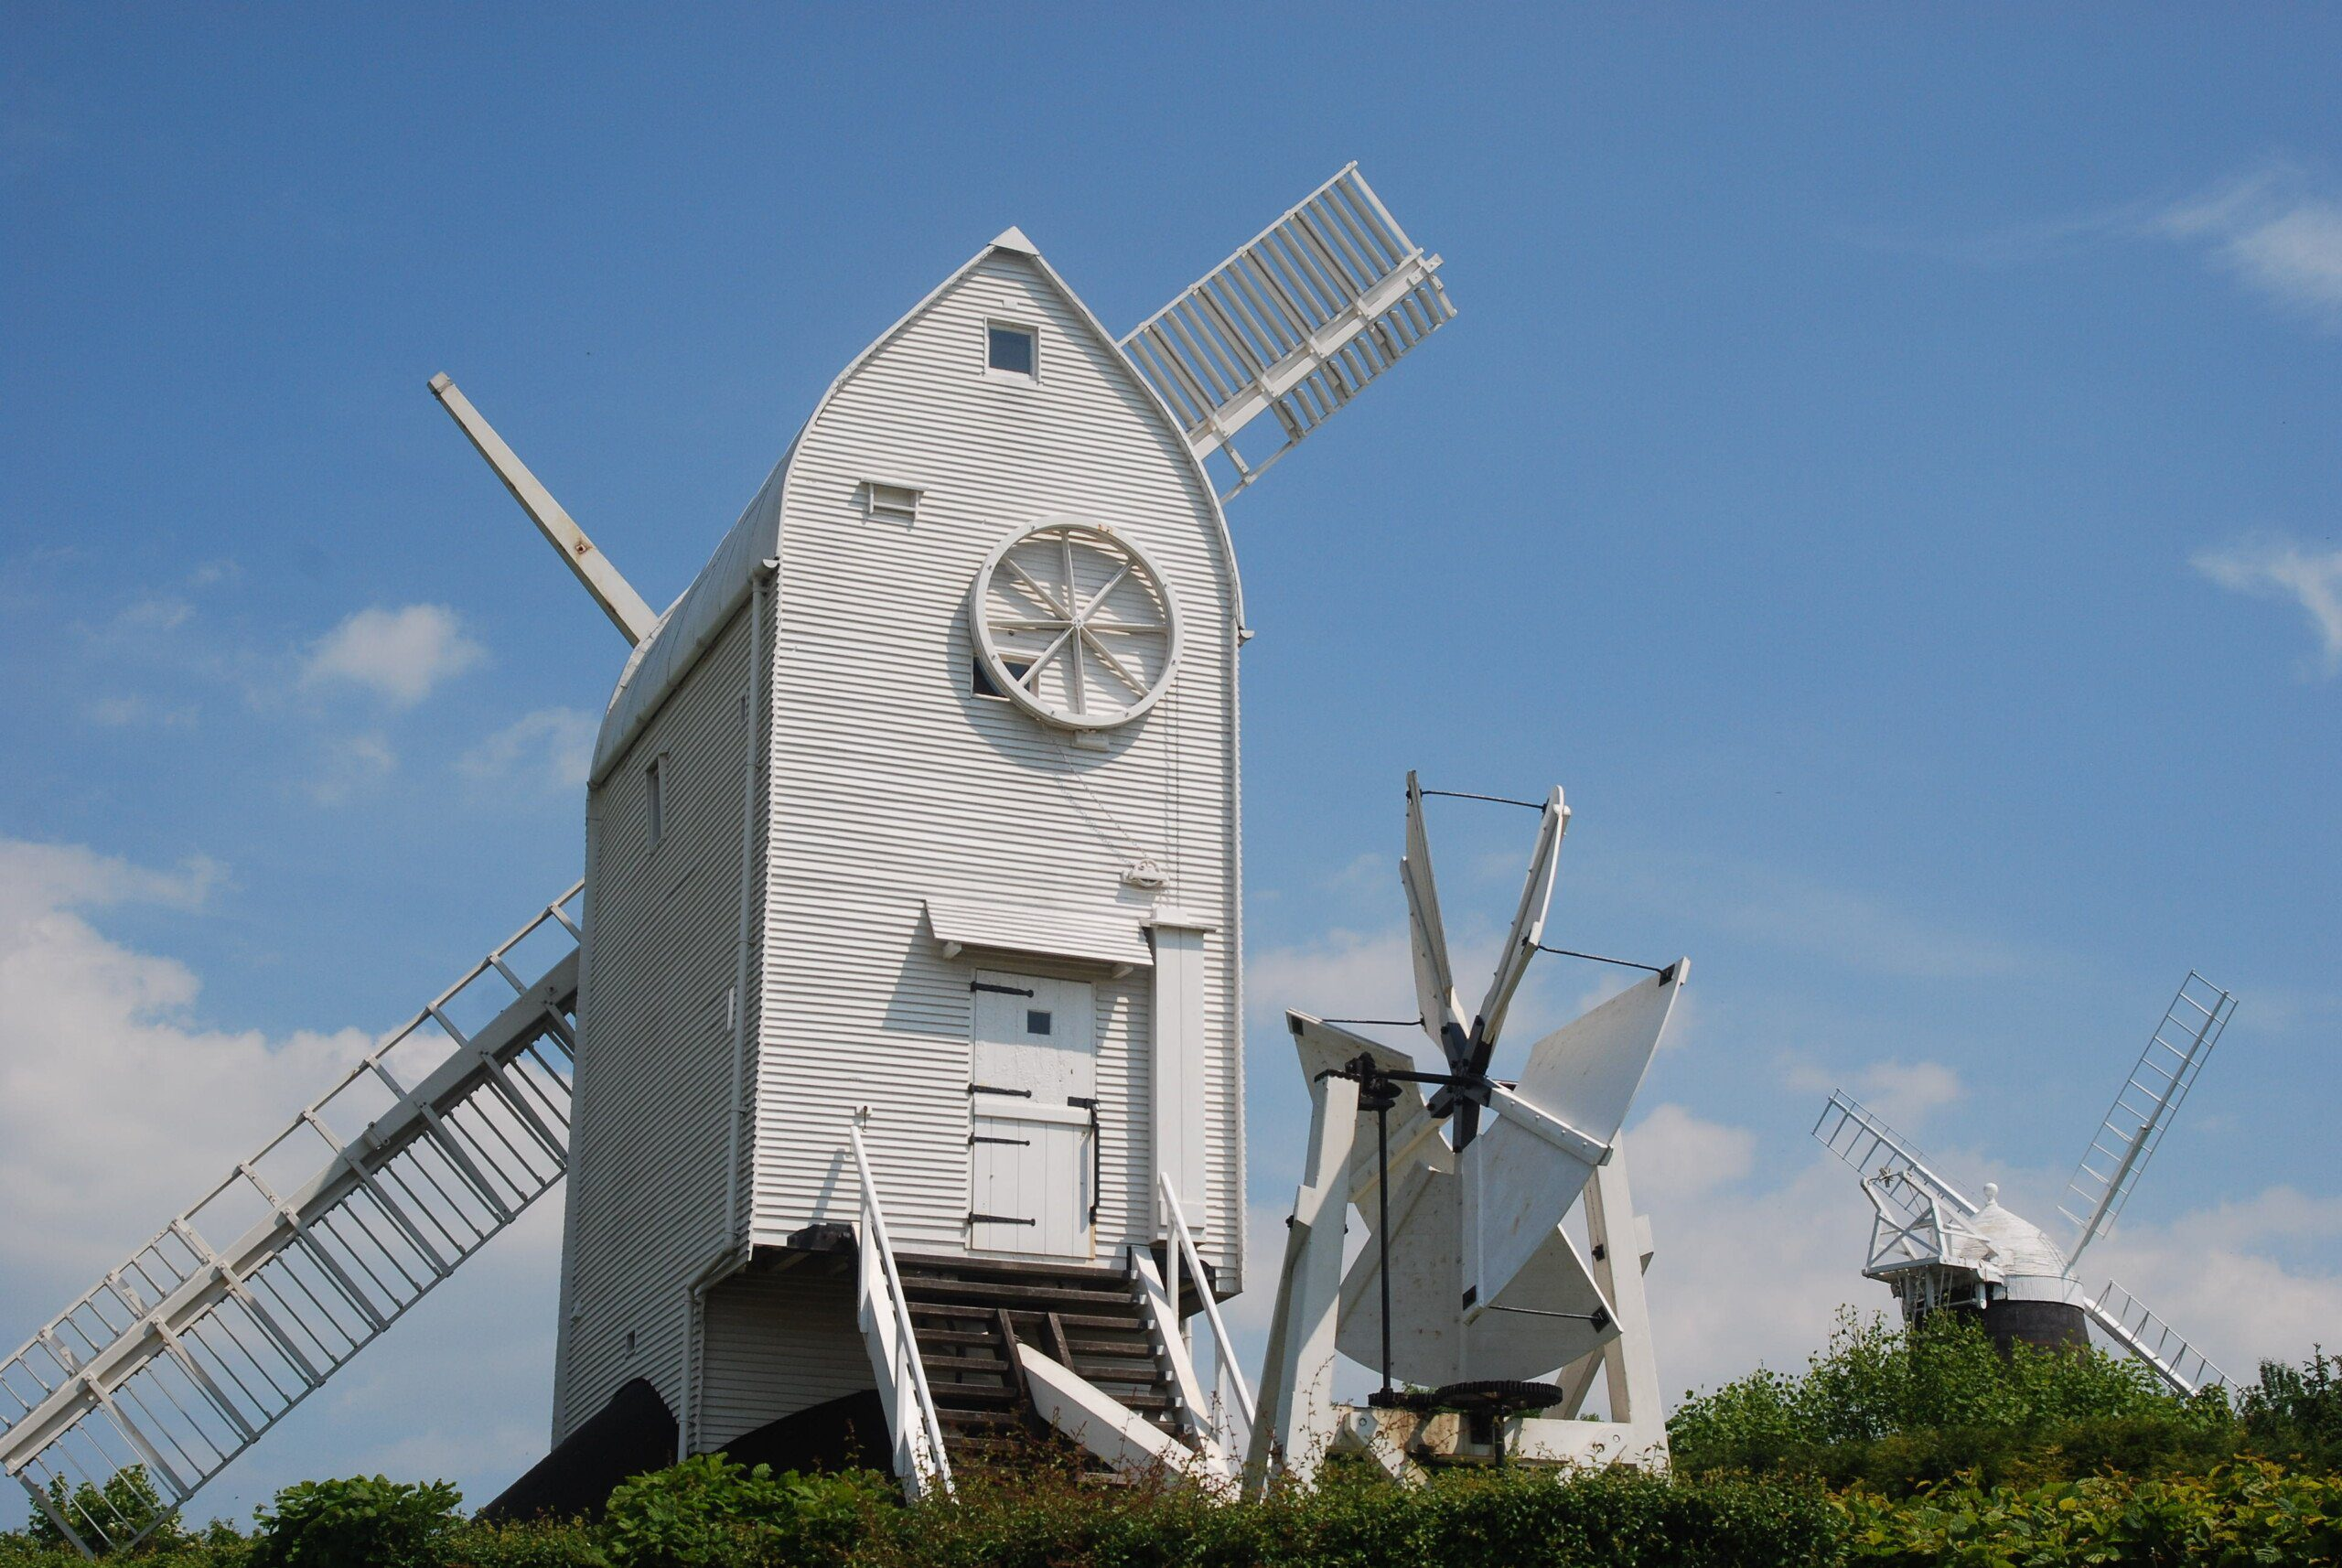 South Downs Way: Jack & Jill windmills, with white-painted clapboard Jill in the foreground